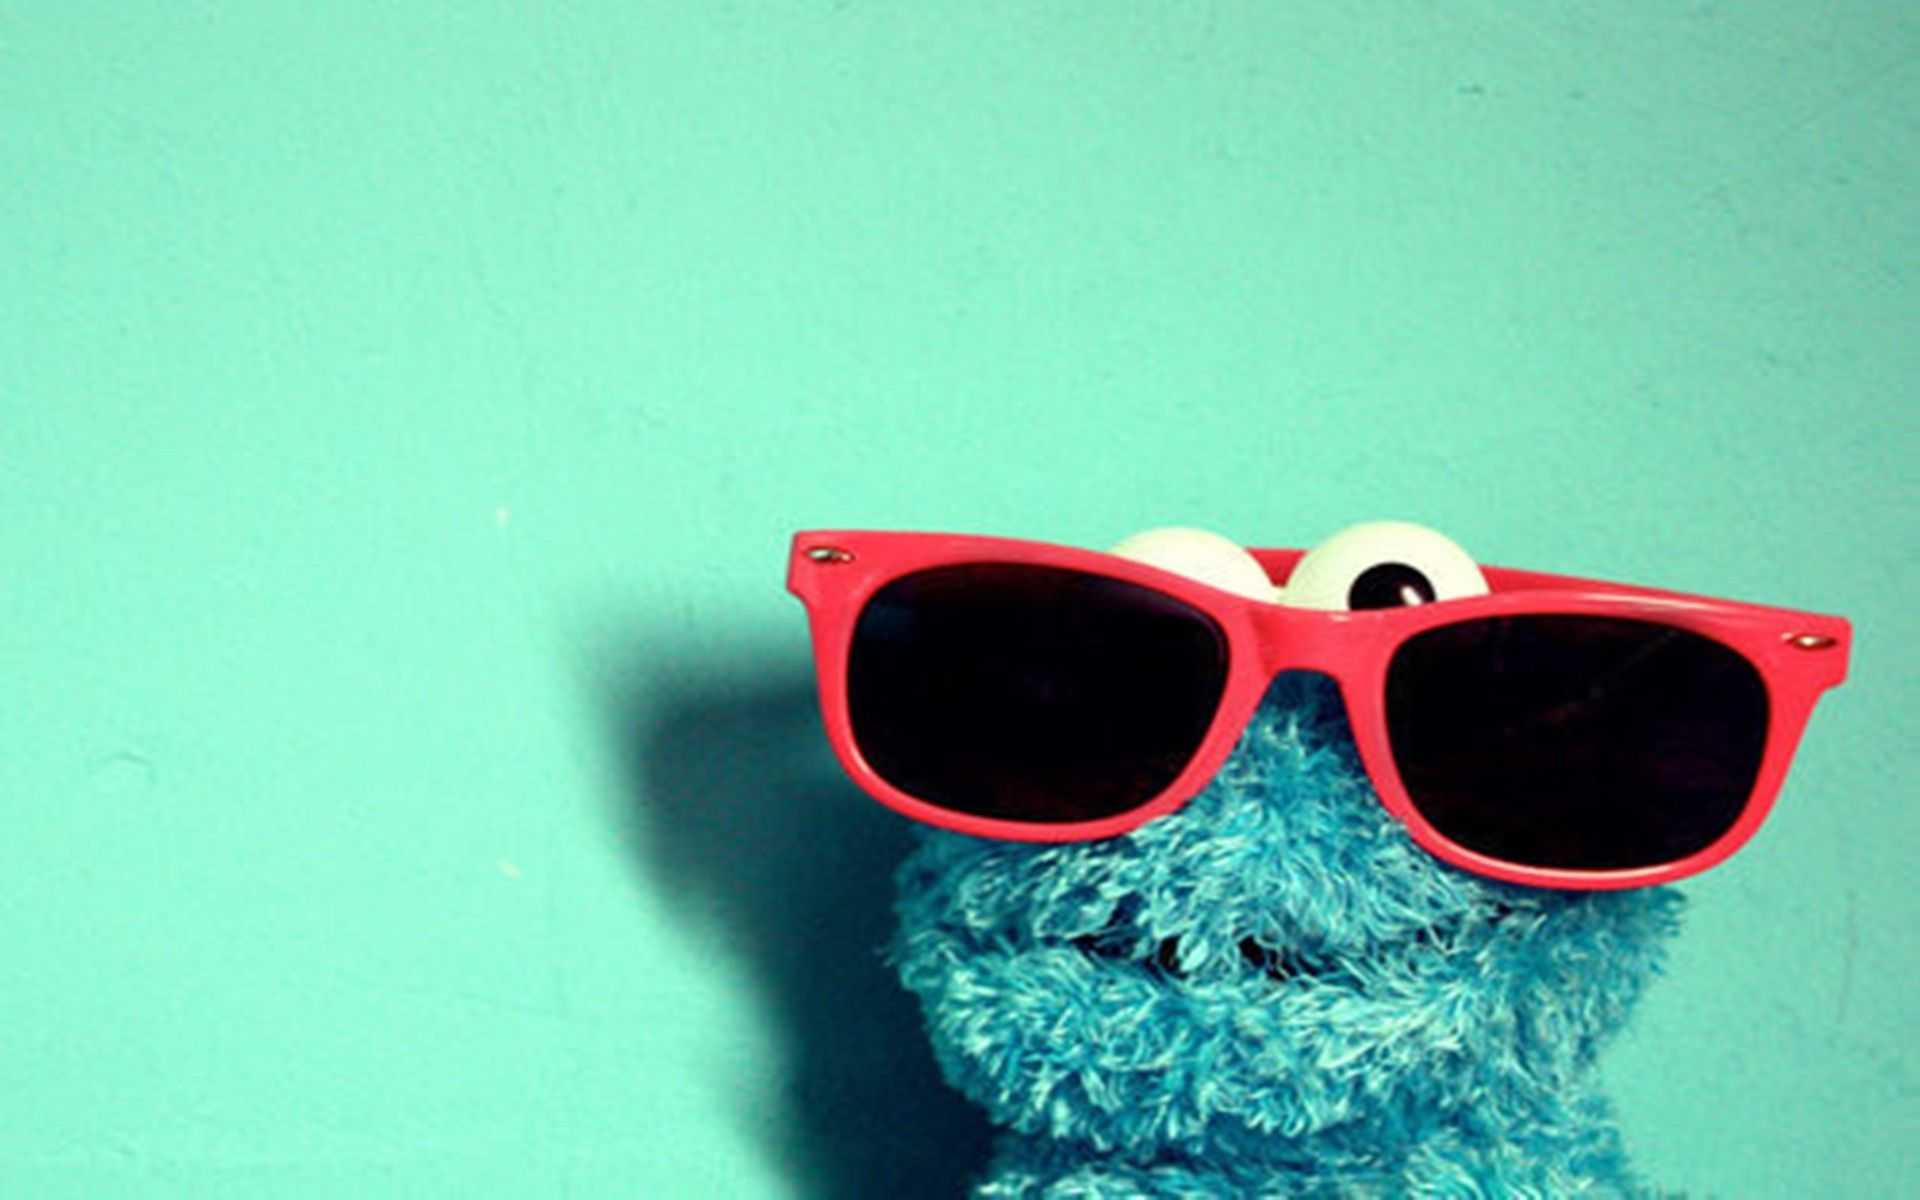 Hes The Cookie Monster From Sesame Street In Those Aweful Moments When You Cant